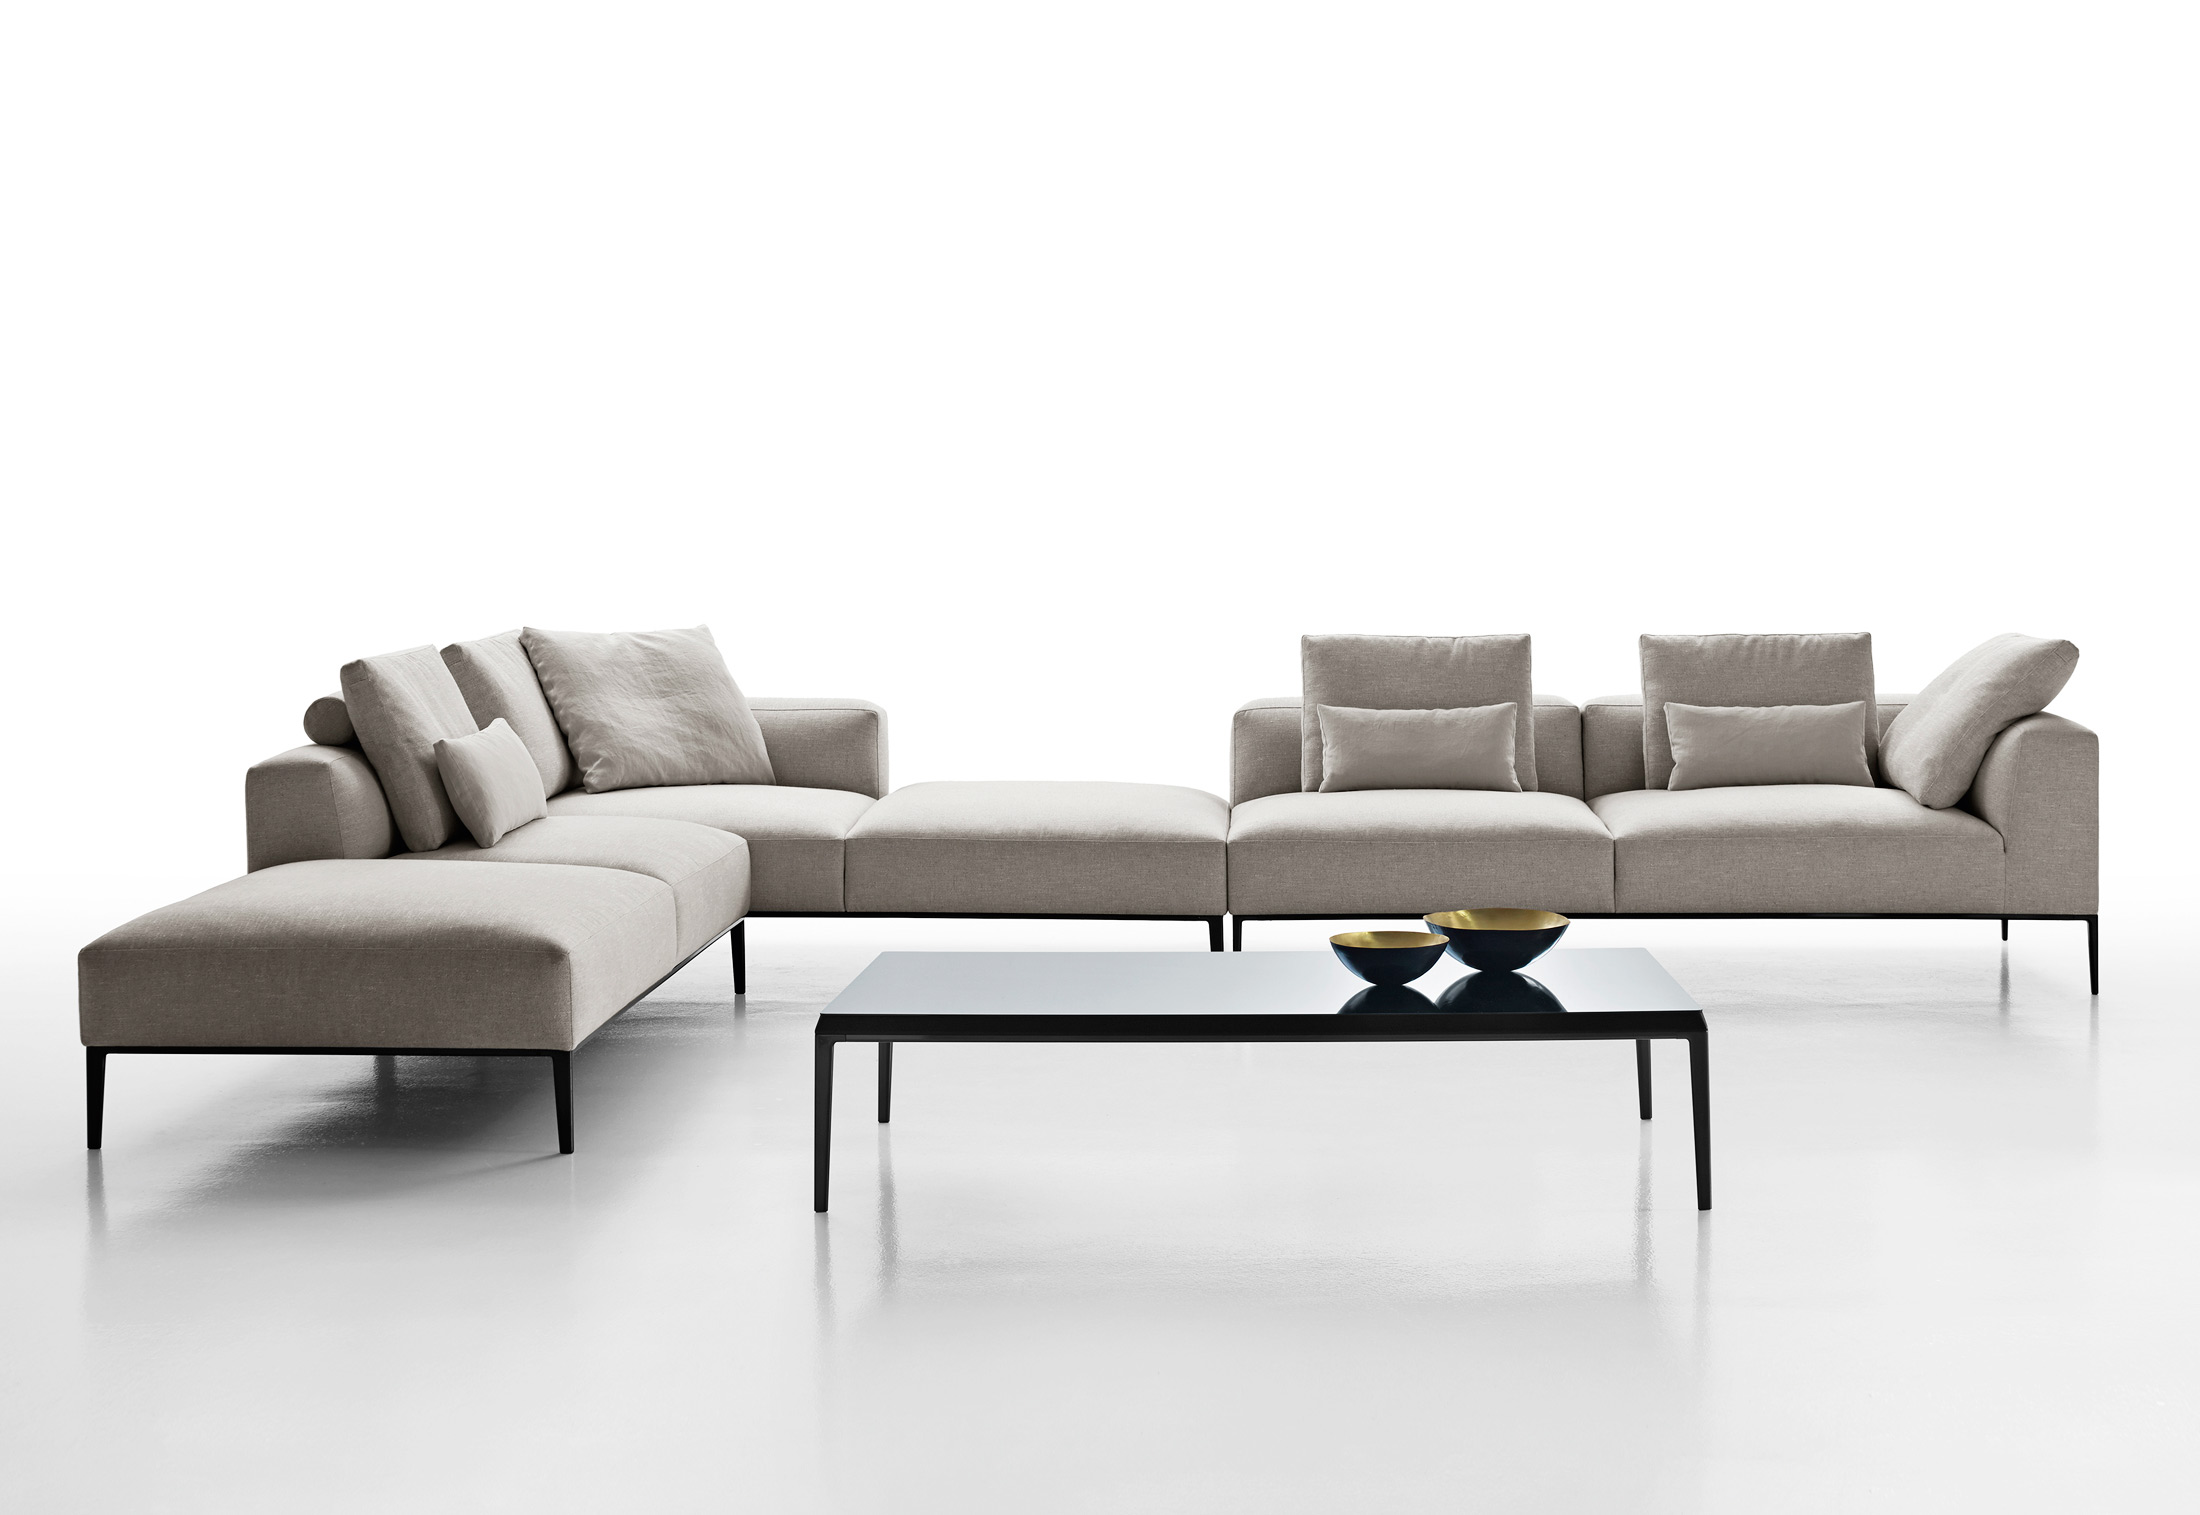 Antonio Citterio City Sofa Michel Effe Sofa System By Antonio Citterio For B B Italia